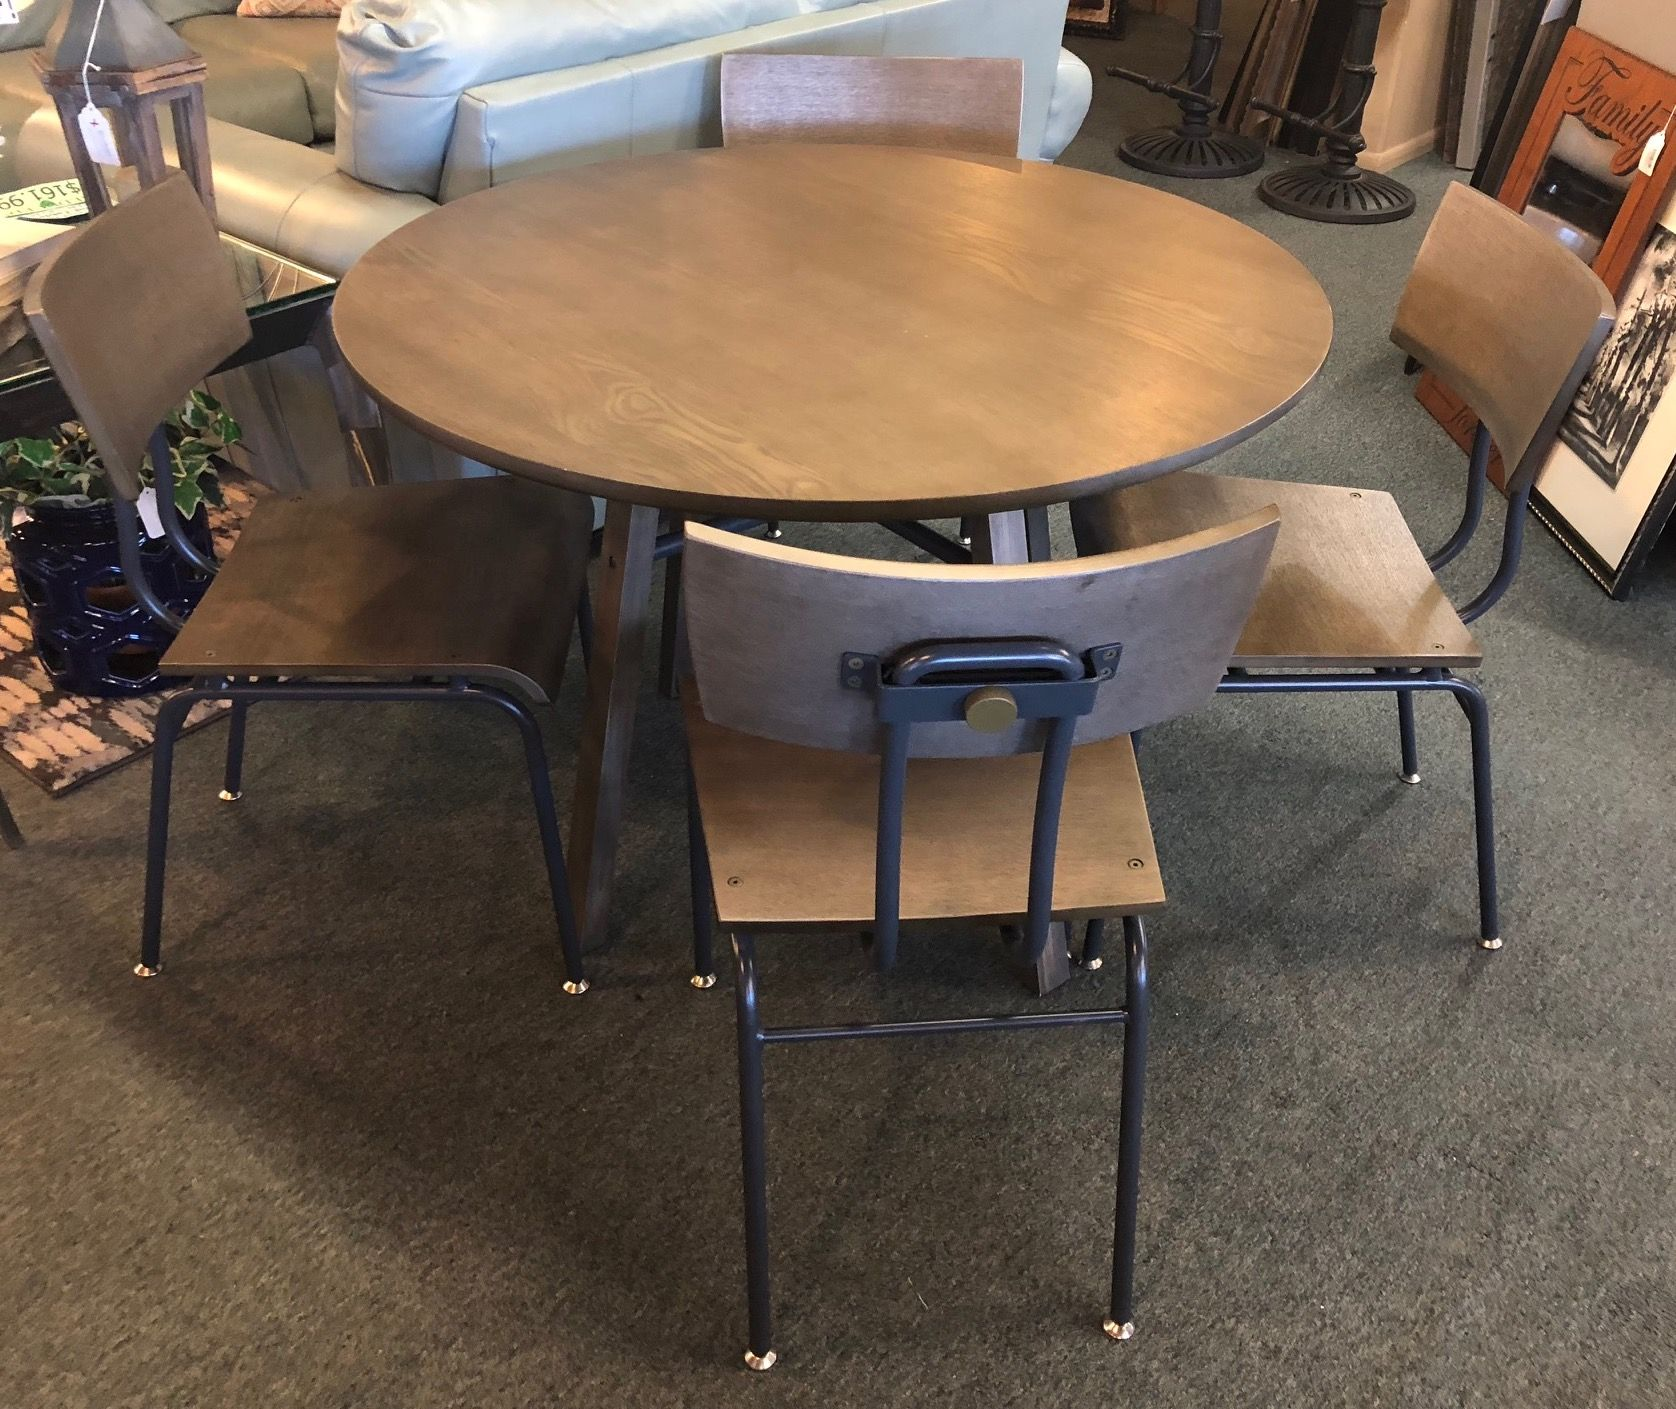 Crate u barrel round table w chairs phoenix voltaire in